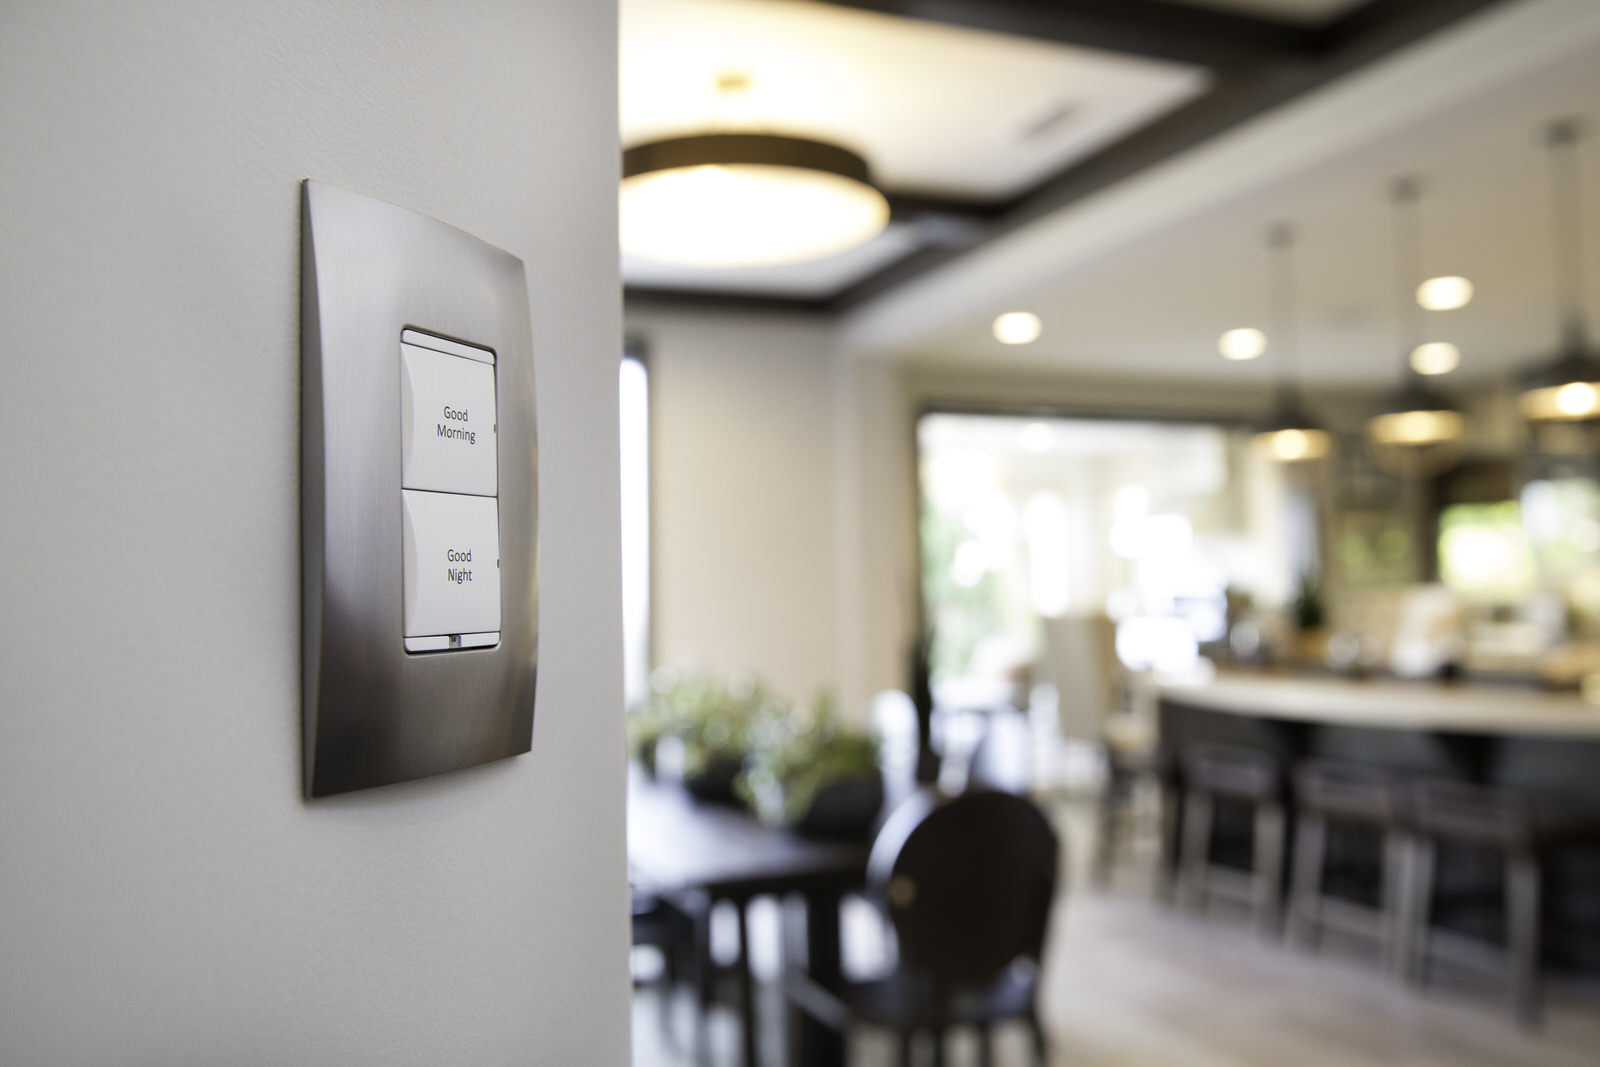 Control4_Lighting_Switch_Kitchen_Good_Morning_Evening_White_Buttons_Chrome_Faceplate